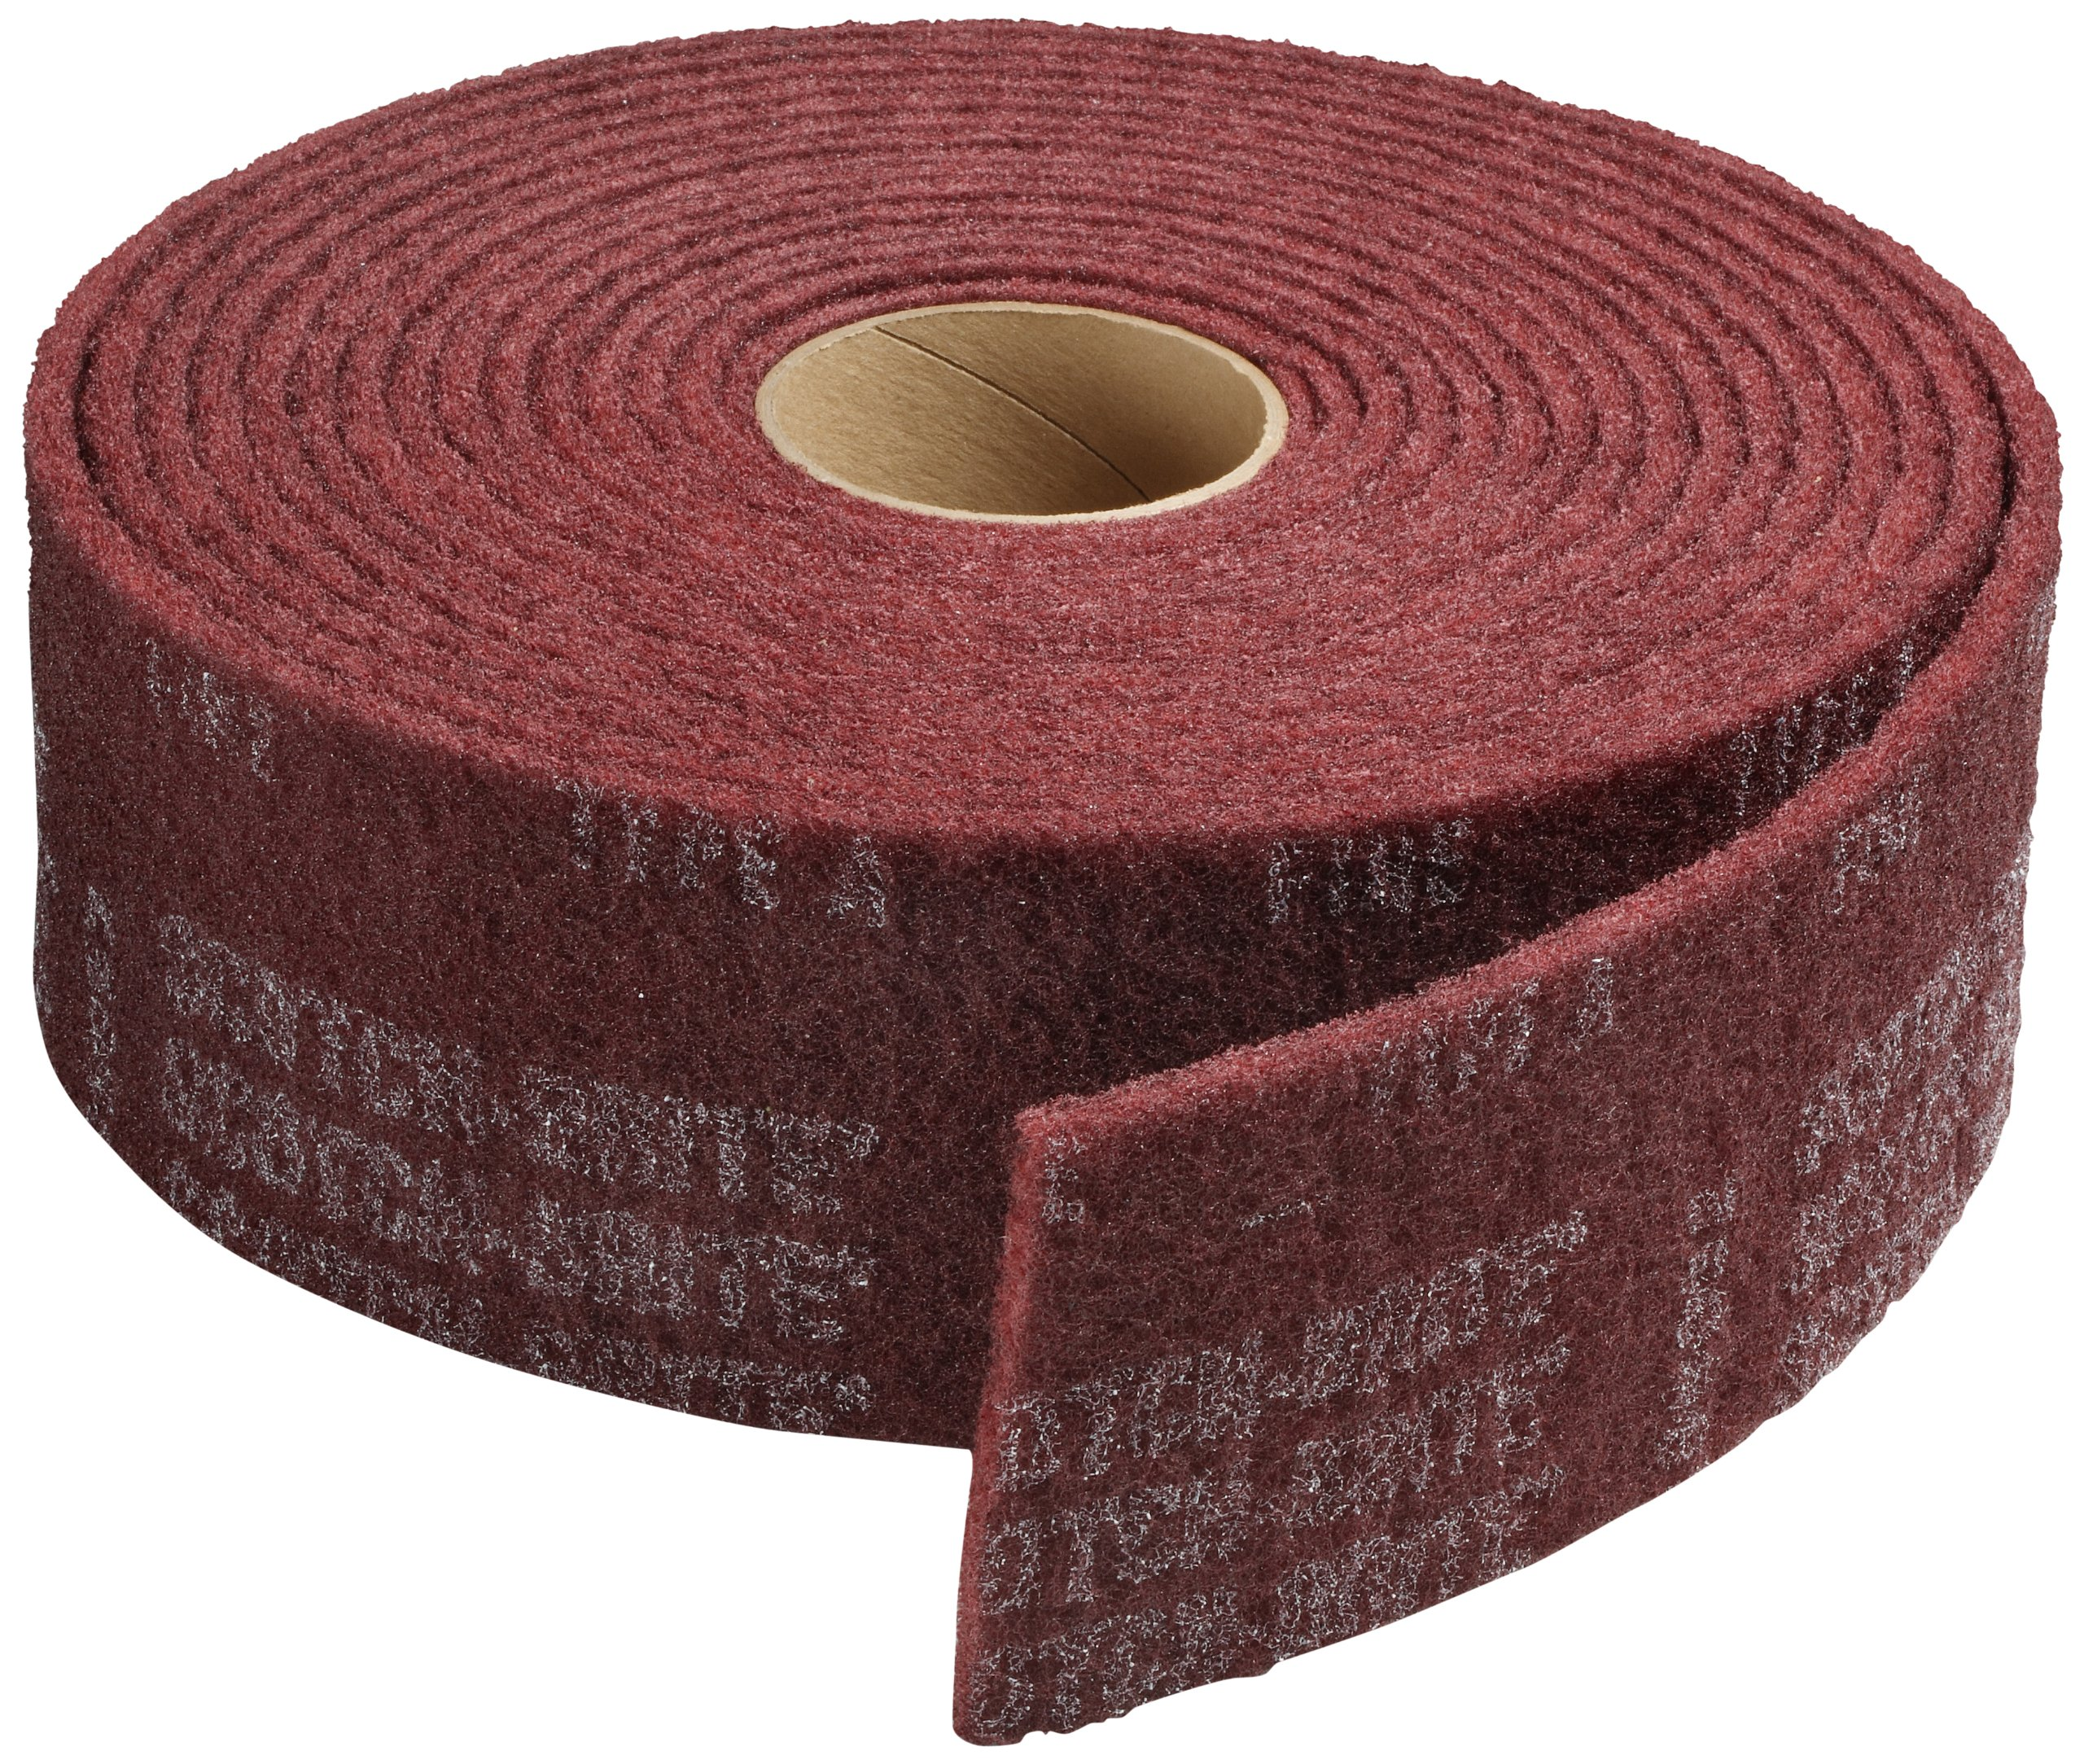 Scotch-Brite(TM) Clean And Finish Roll, Aluminum Oxide, 30' Length x 4 Width, Very Fine Grit (Pack of 3) by Cubitron (Image #1)